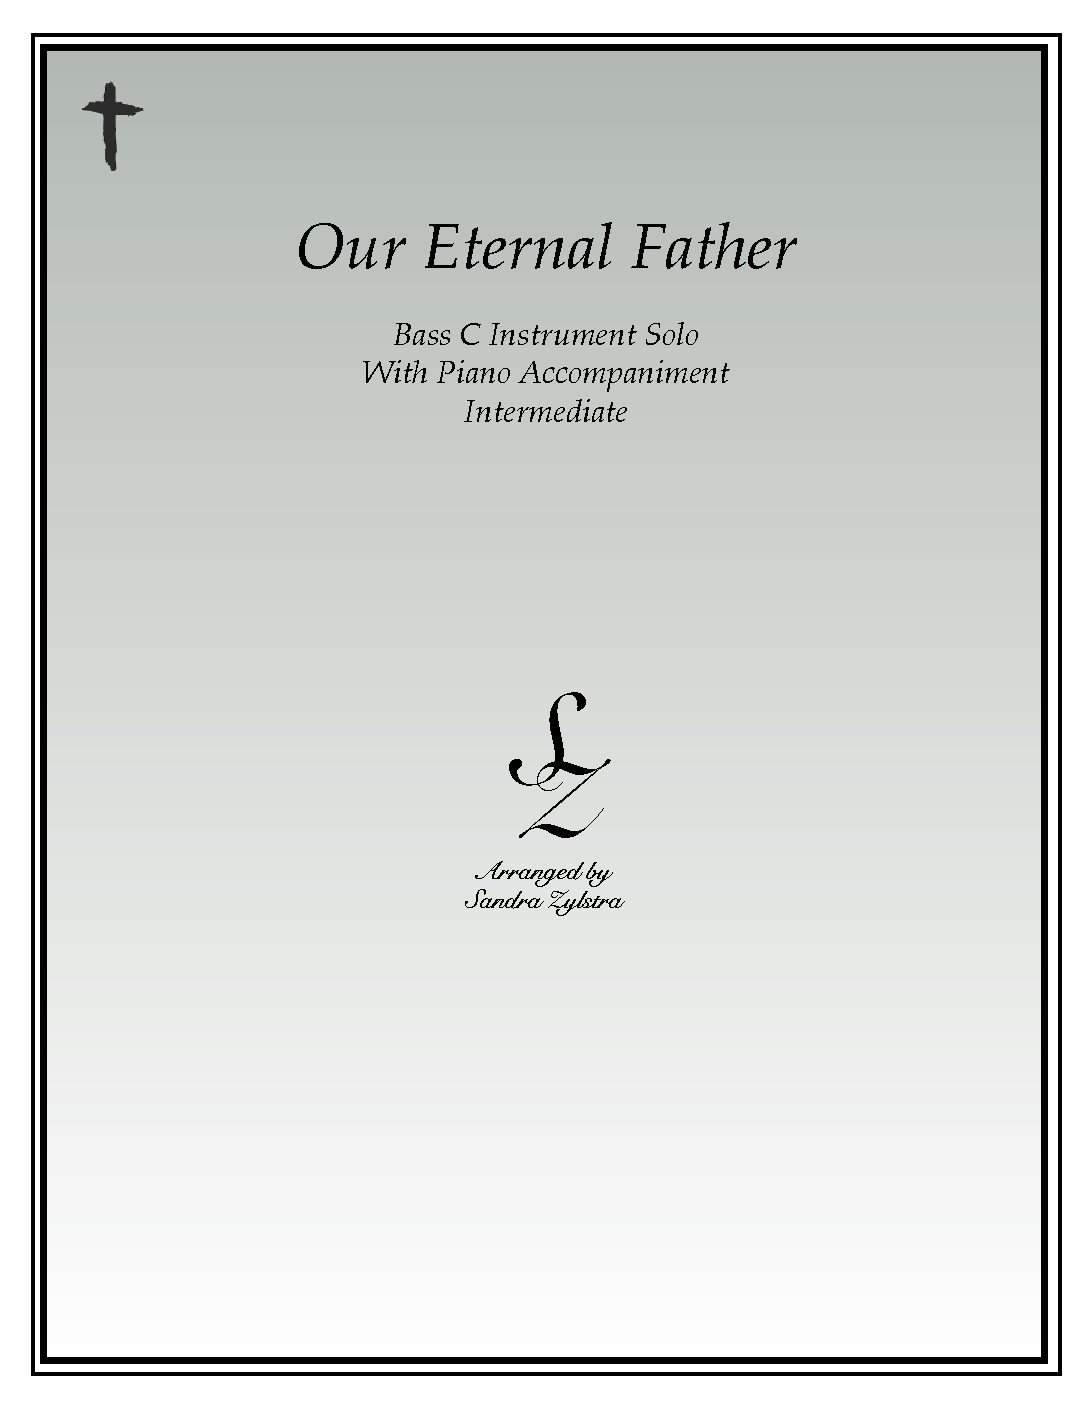 Our Eternal Father -Bass C Instrument Solo